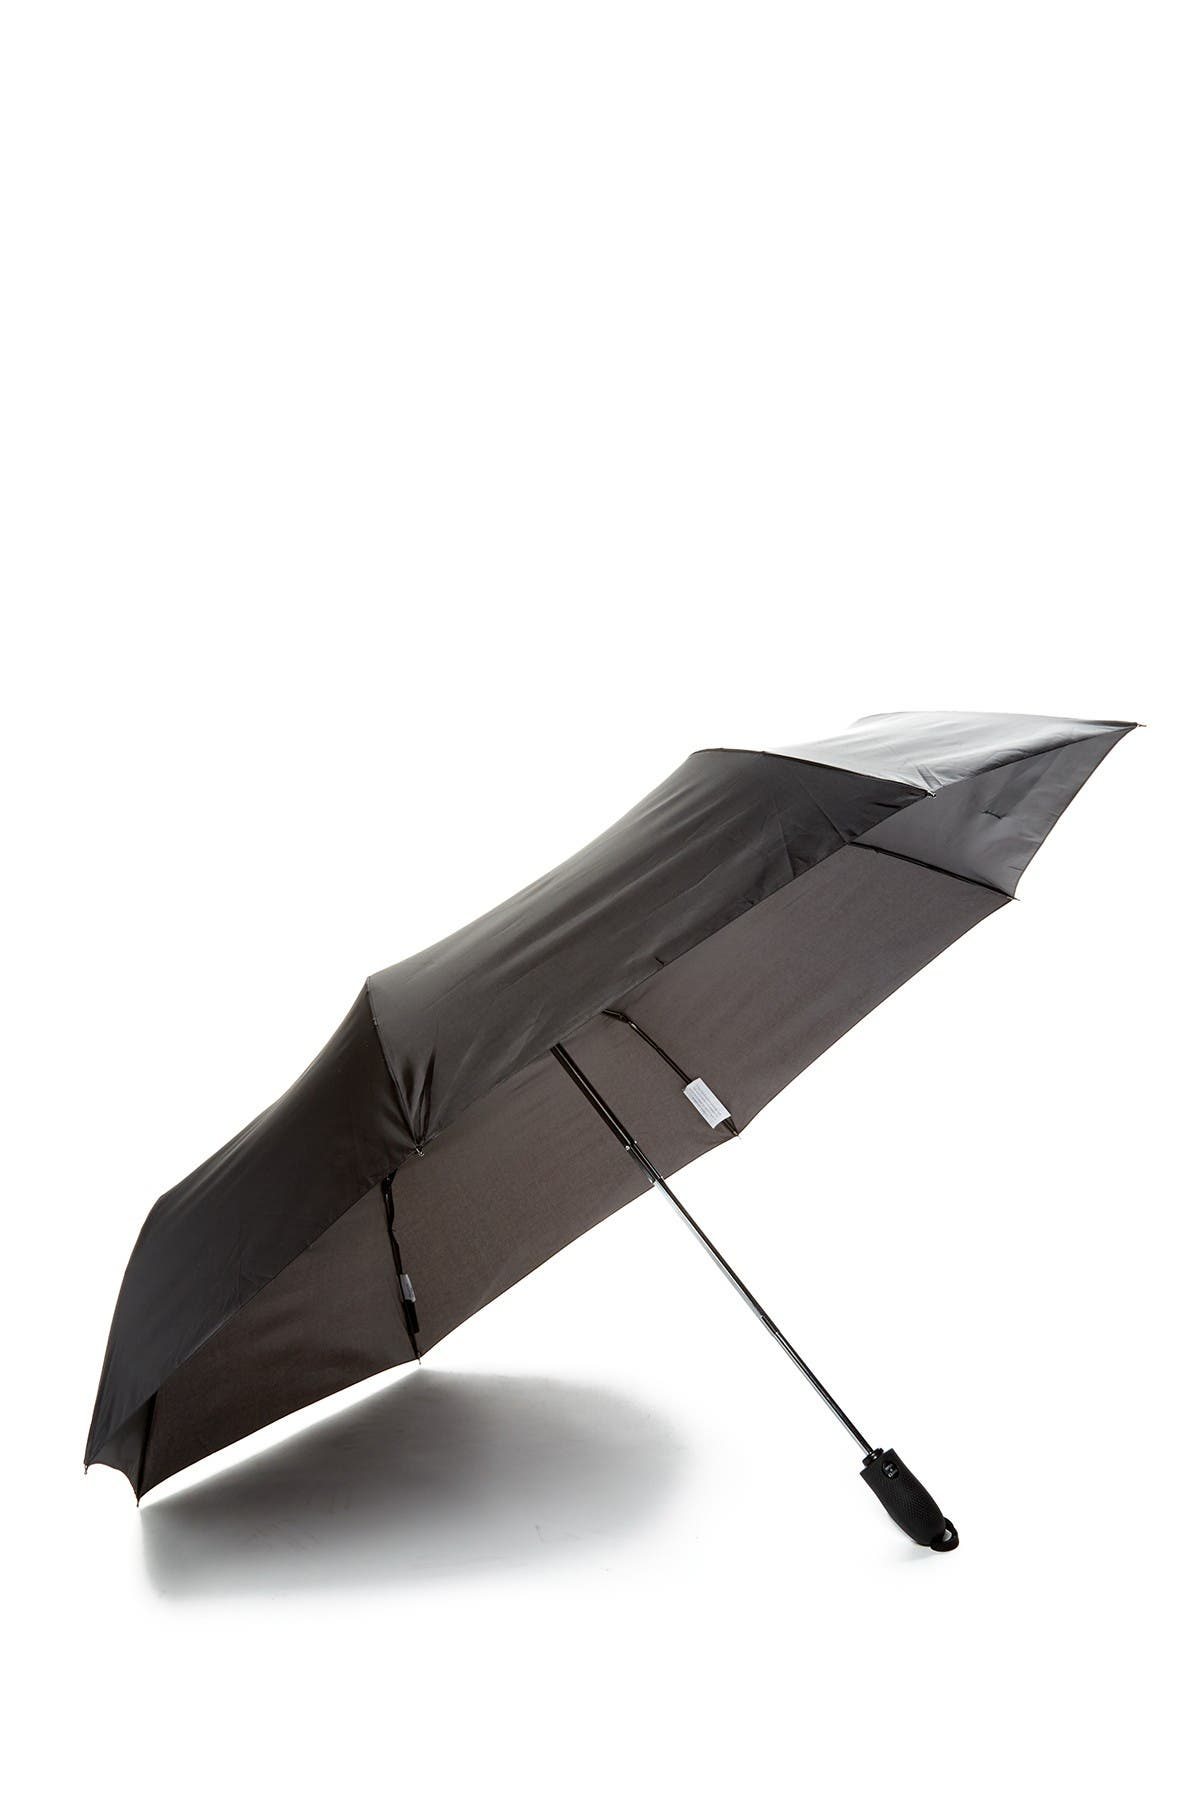 Image of Nordstrom Rack Folding Umbrella